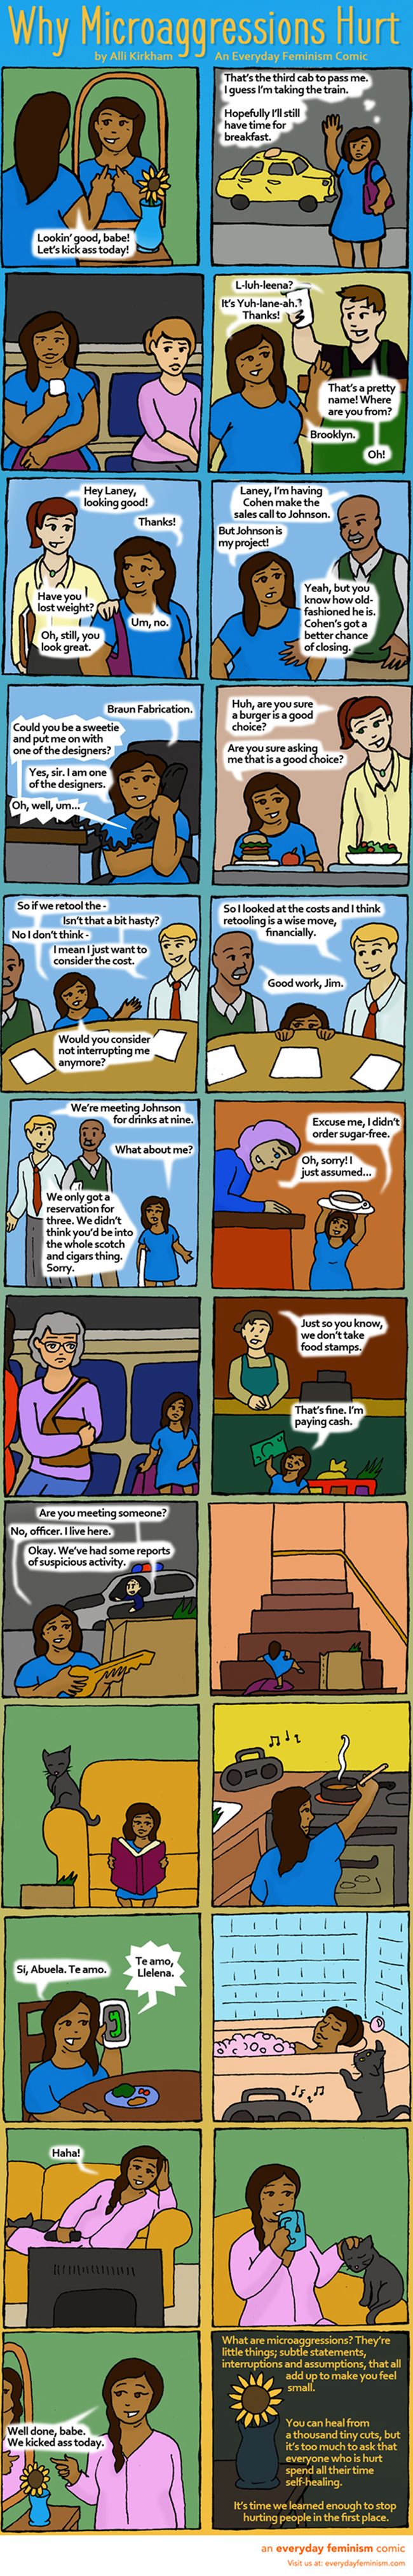 Why Microaggressions Hurt